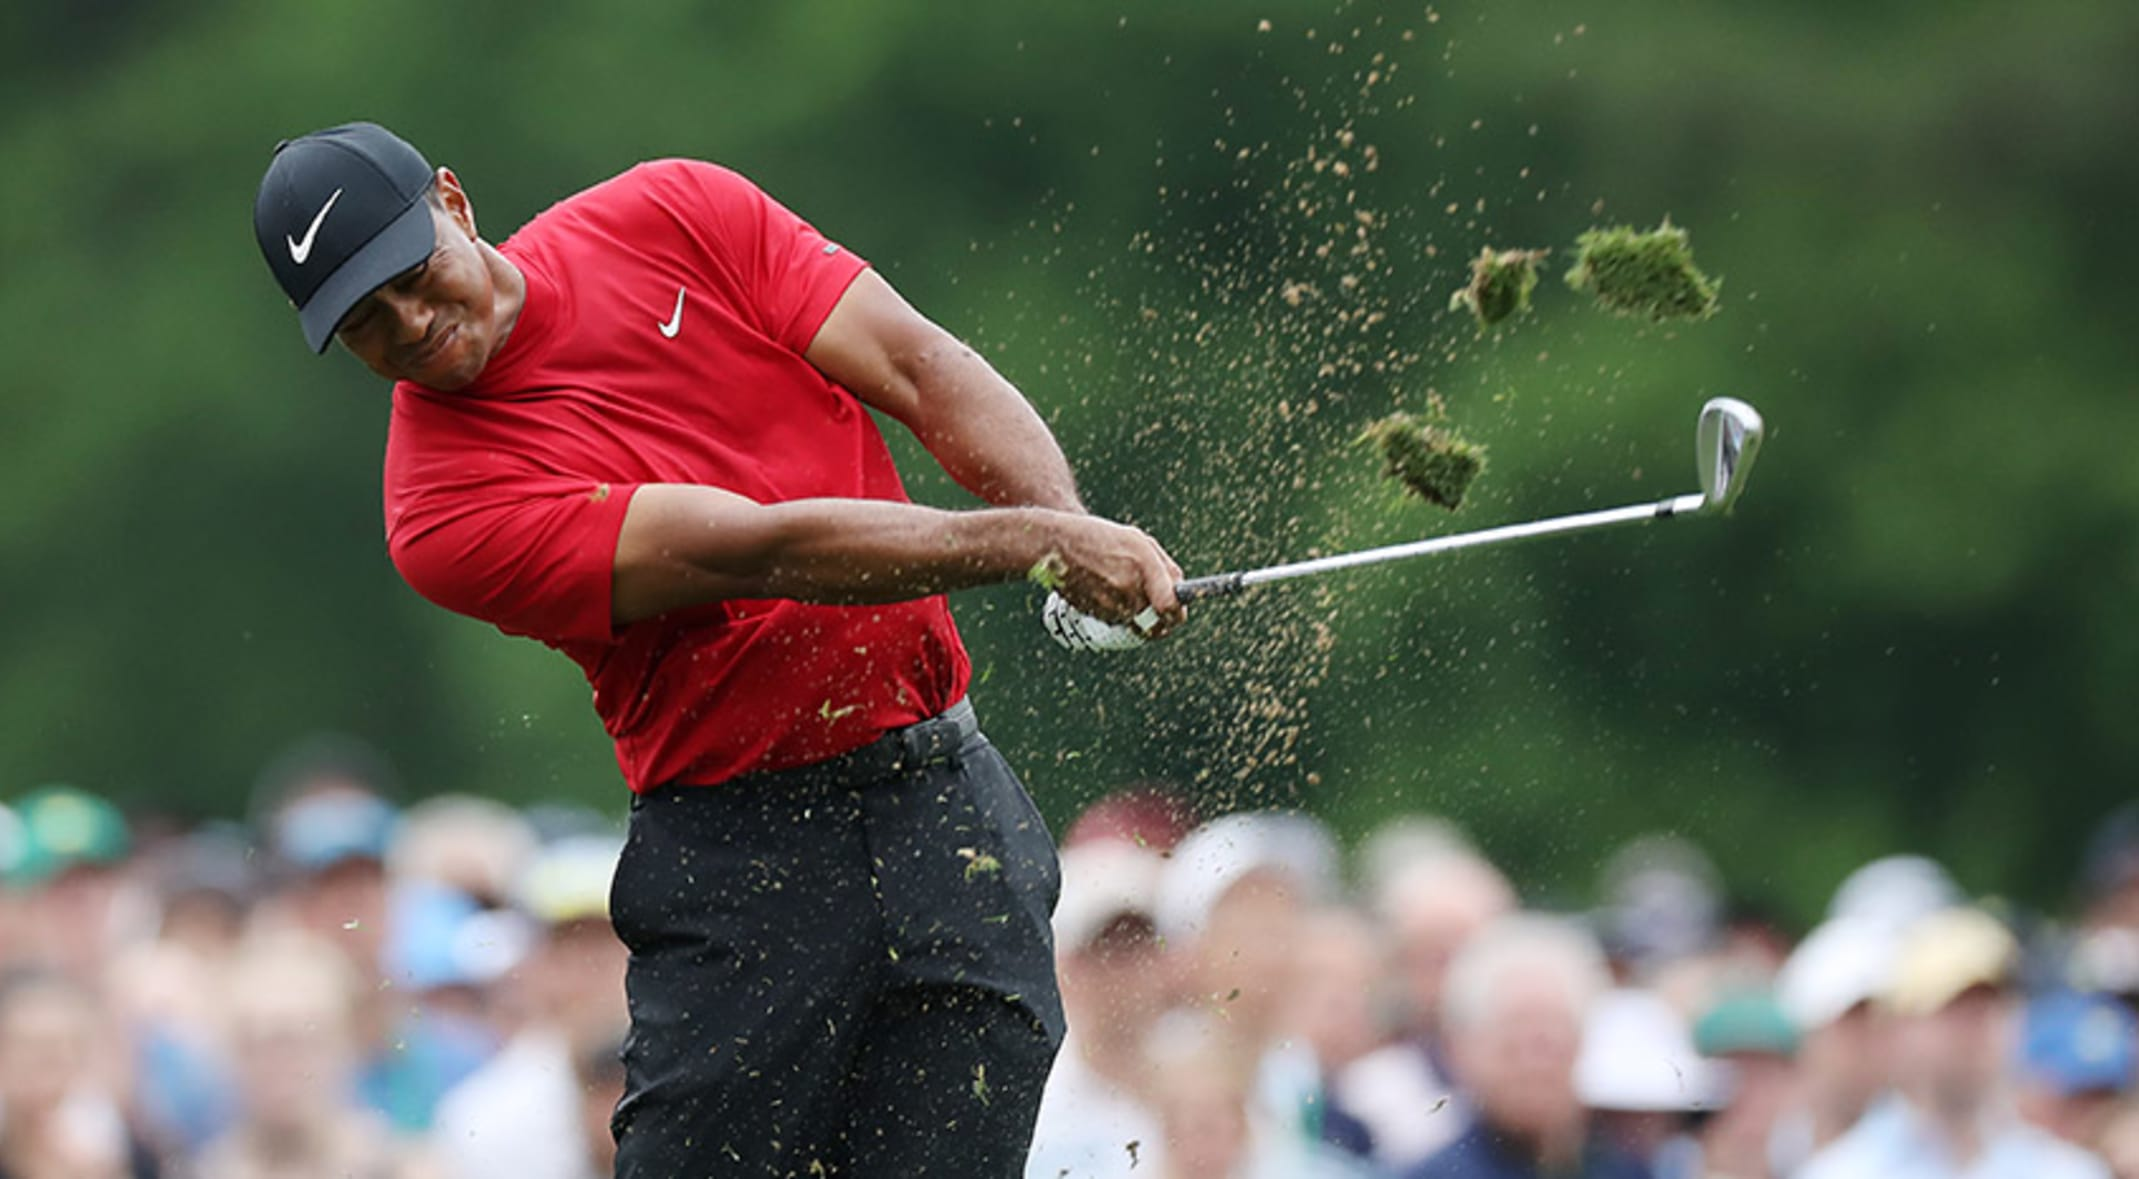 A closer look at clutch shots from Tiger Woods' memorable Masters win